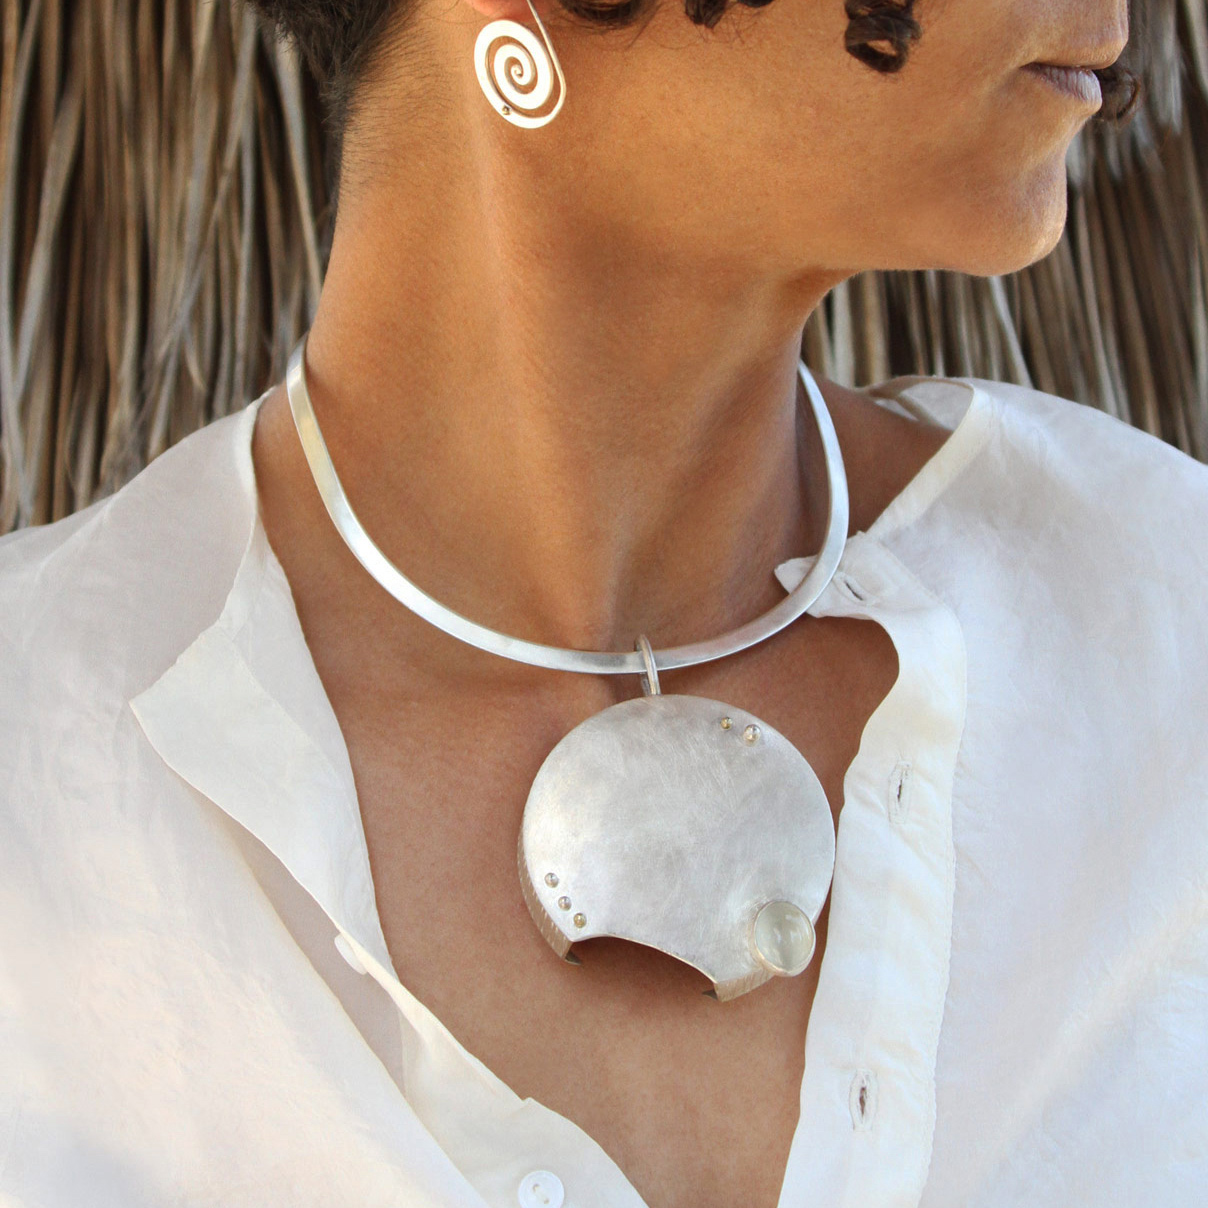 Handmade, one of a kind and a statement, this jewelry pieces is a must have!